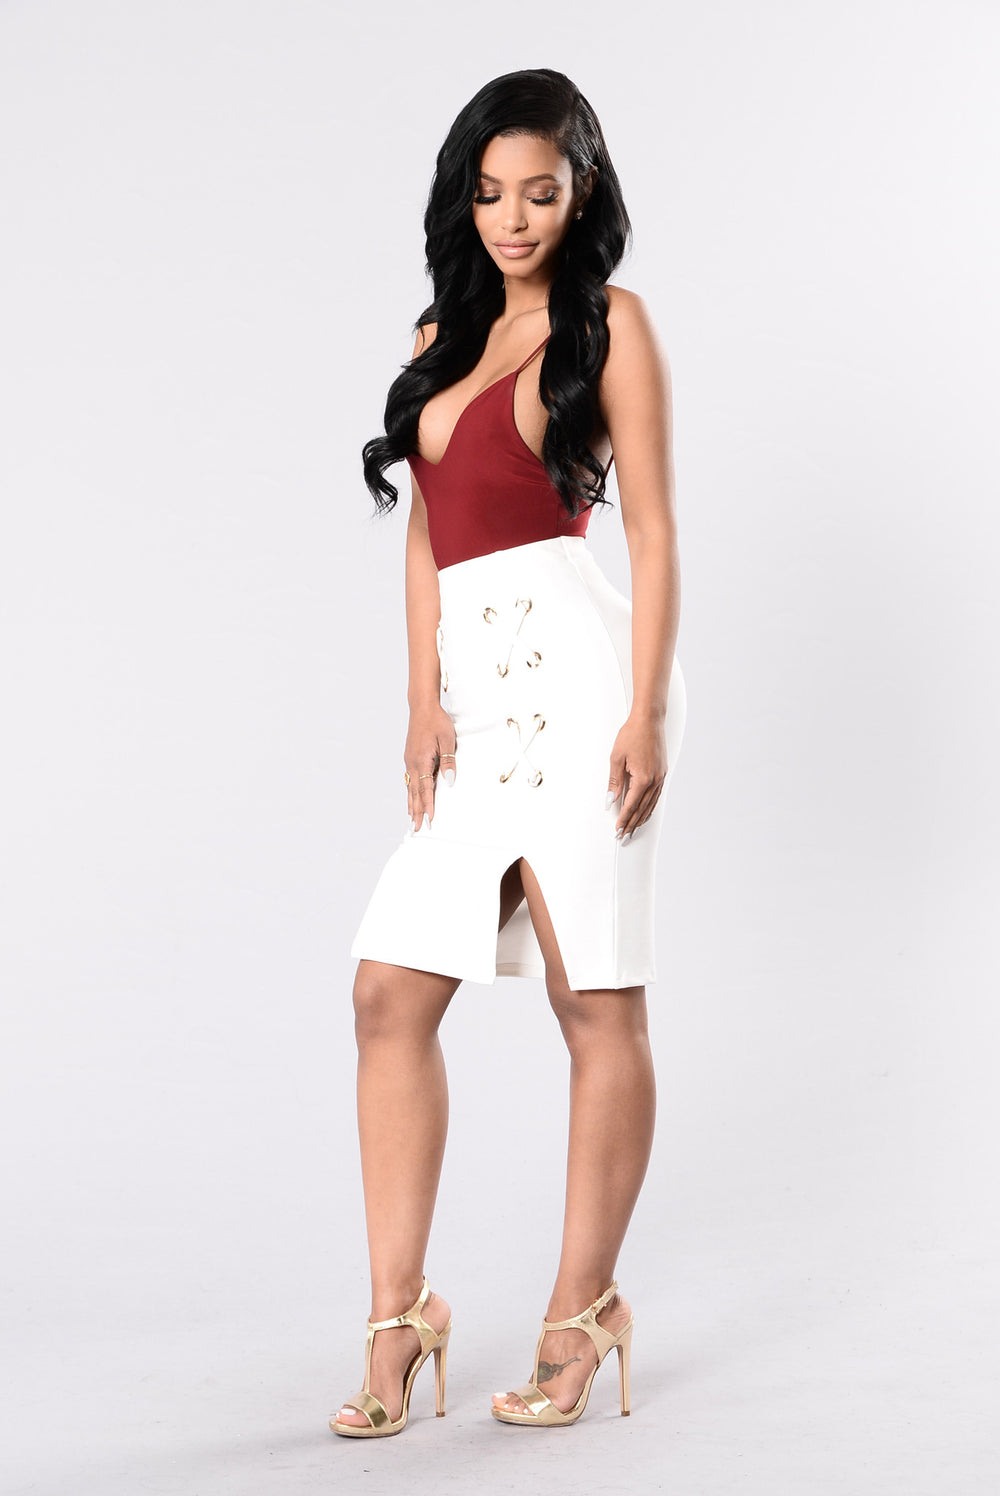 Leg's Crossed Skirt - White